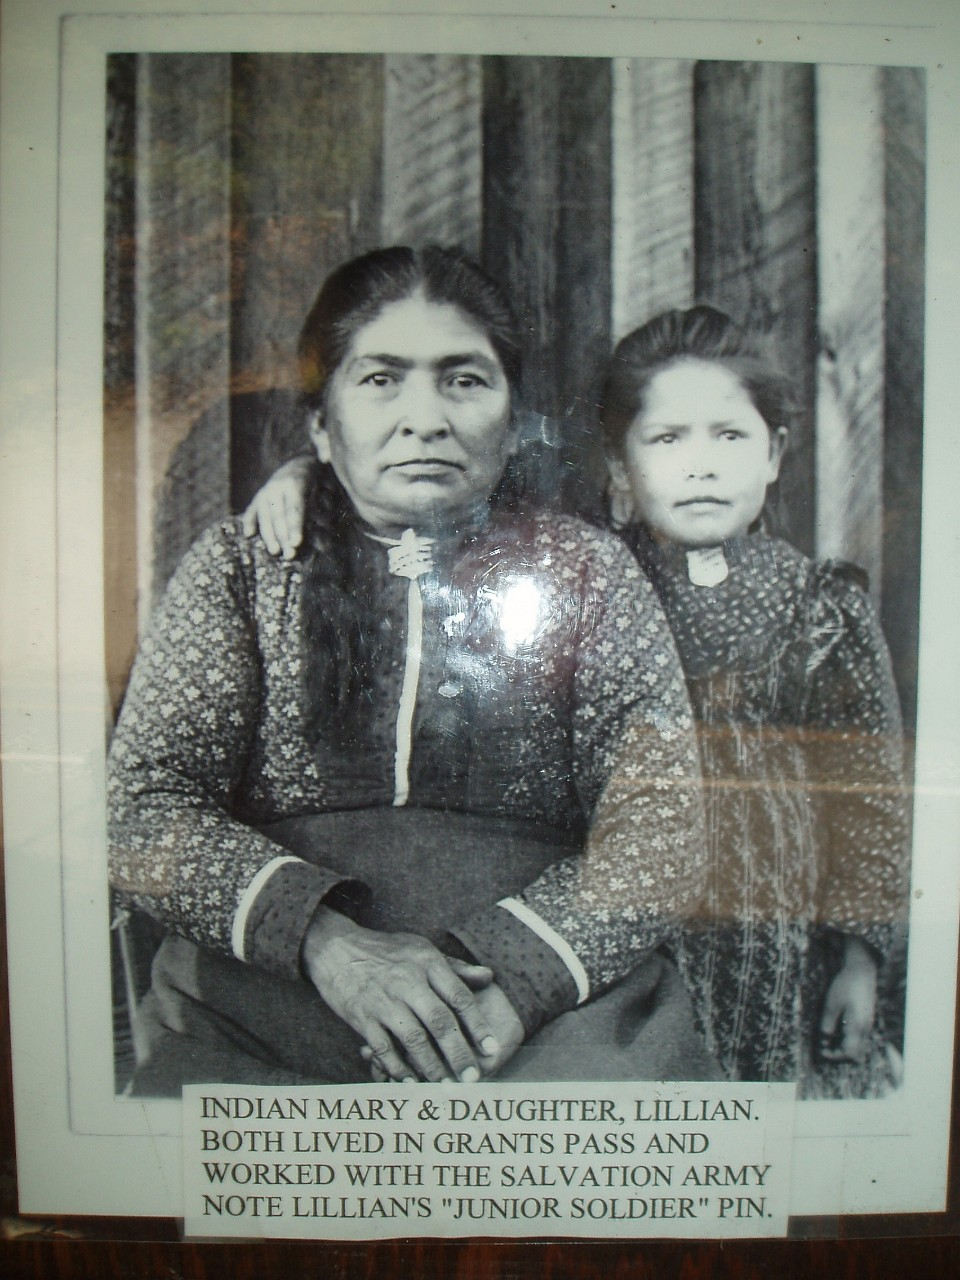 Indian Mary and daughter Lillian